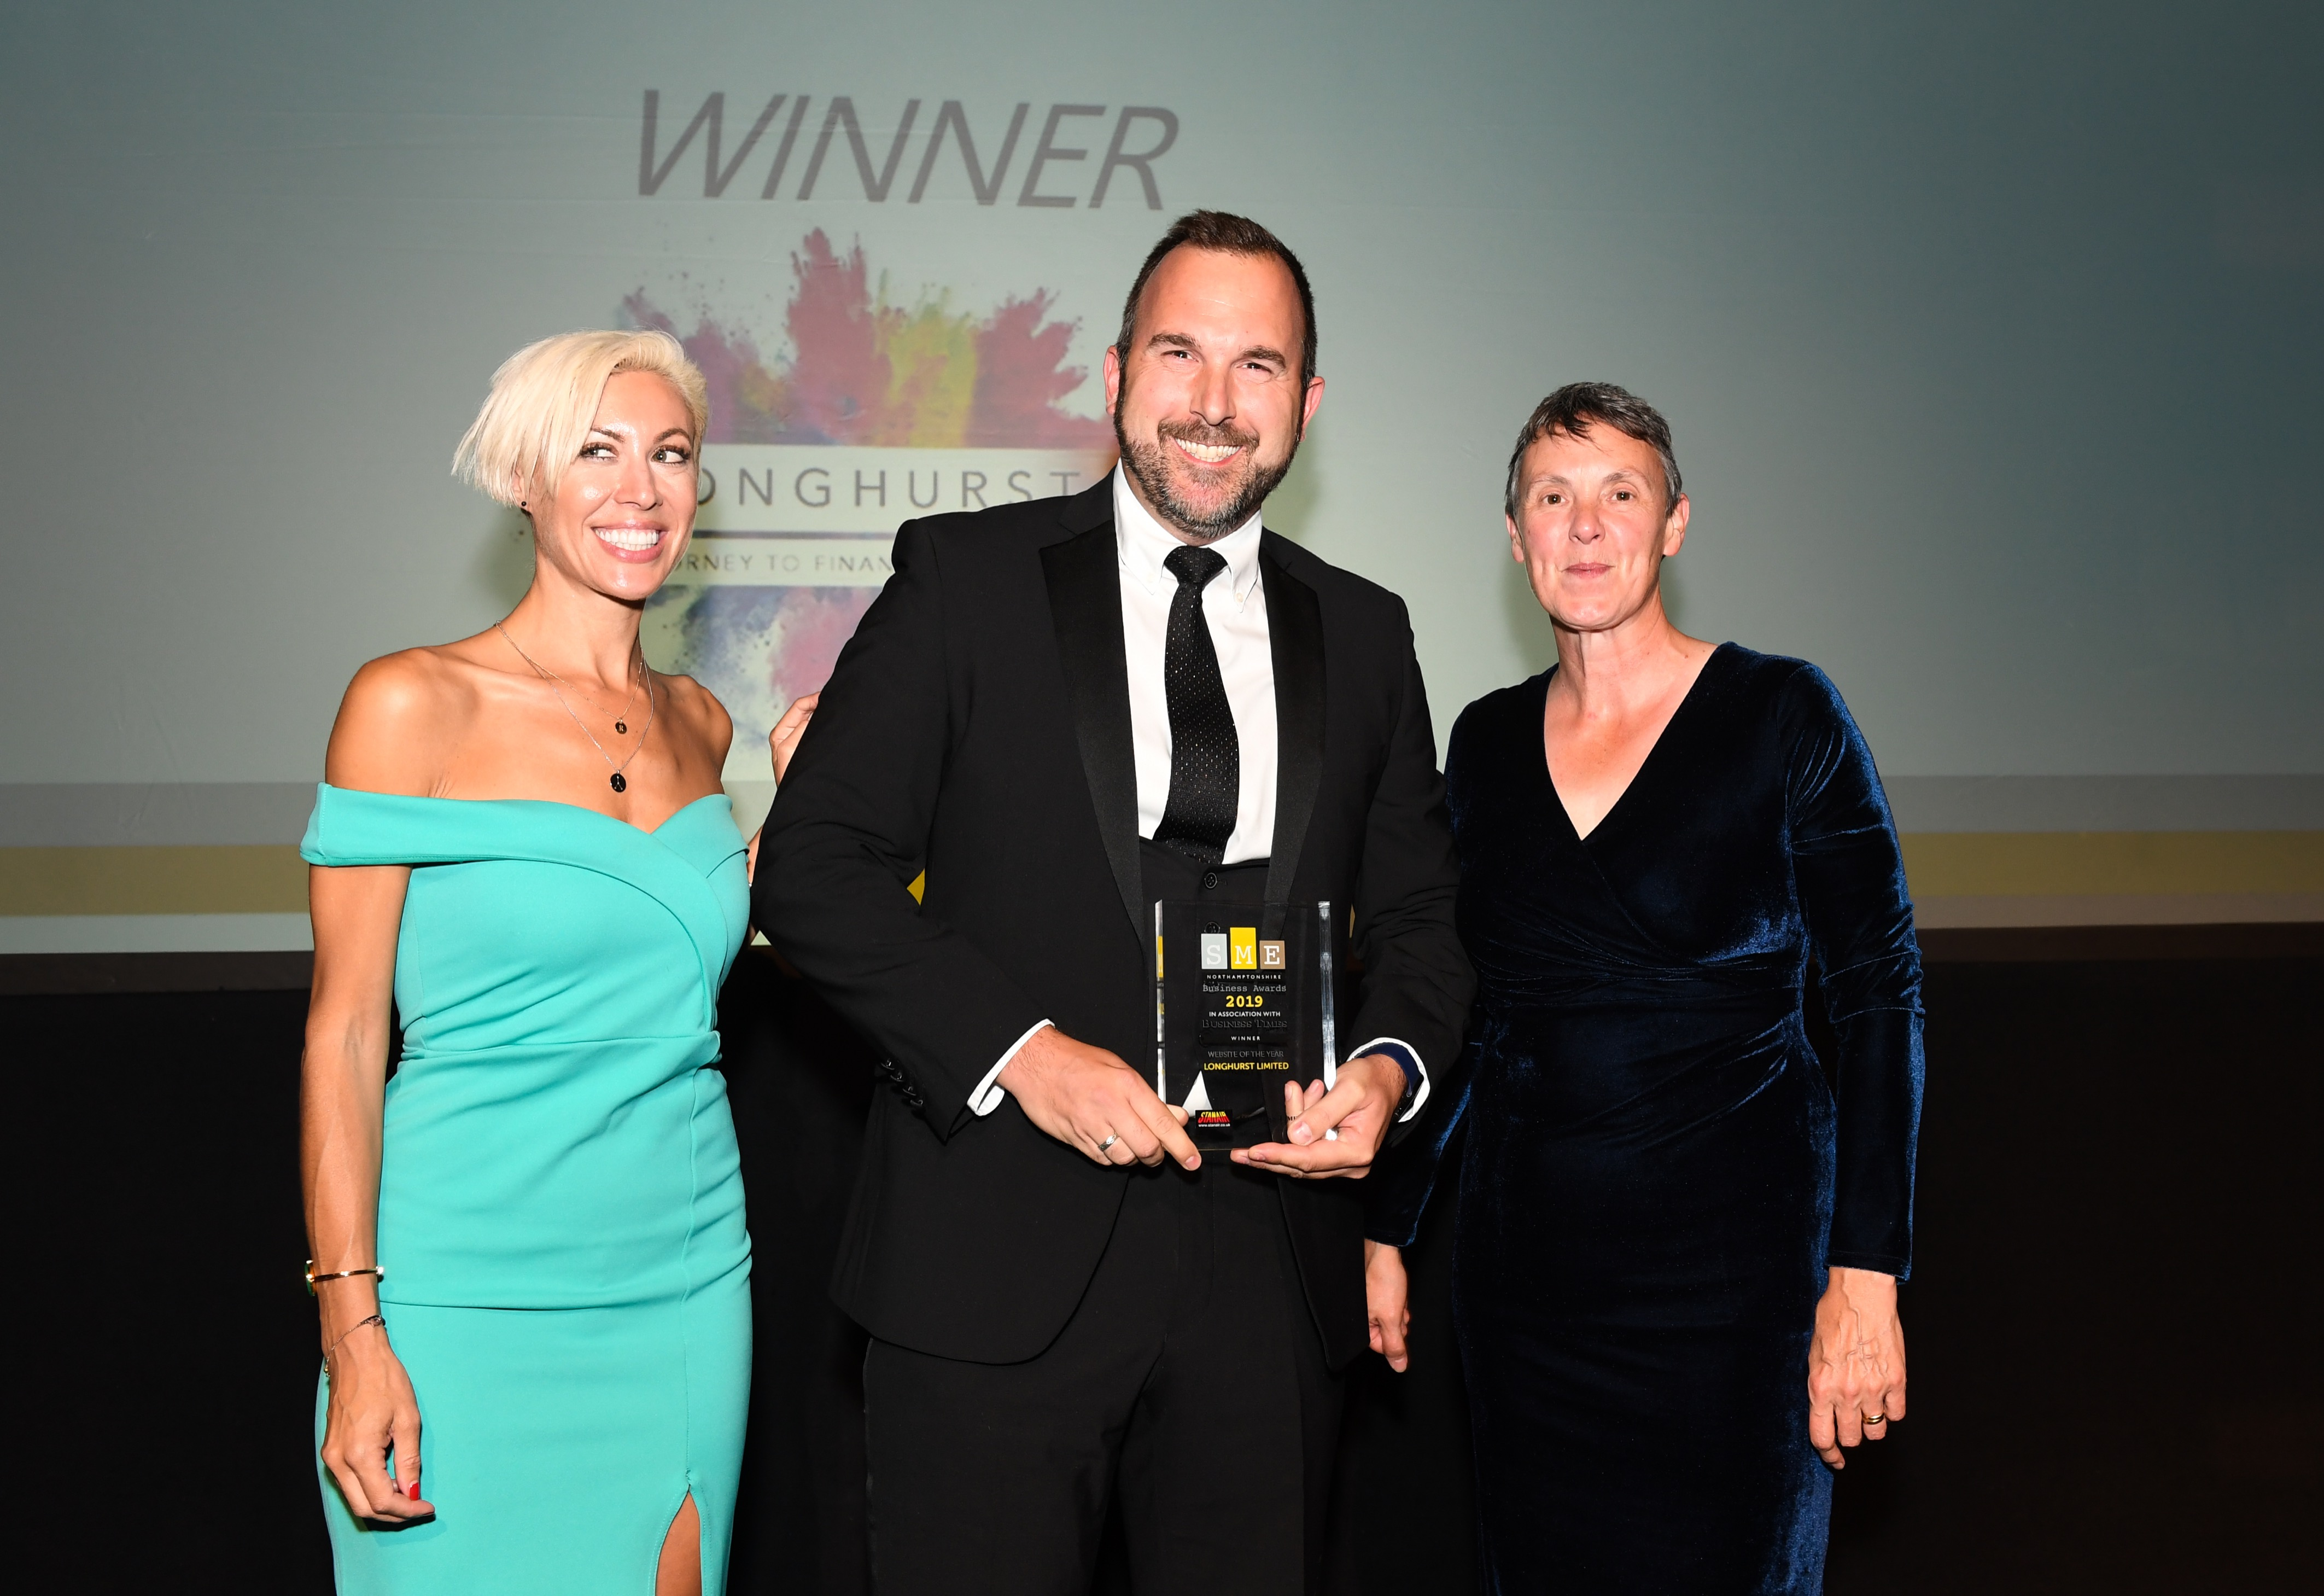 Longhurst - Website of the Year - SME South Northamptonshire Awards